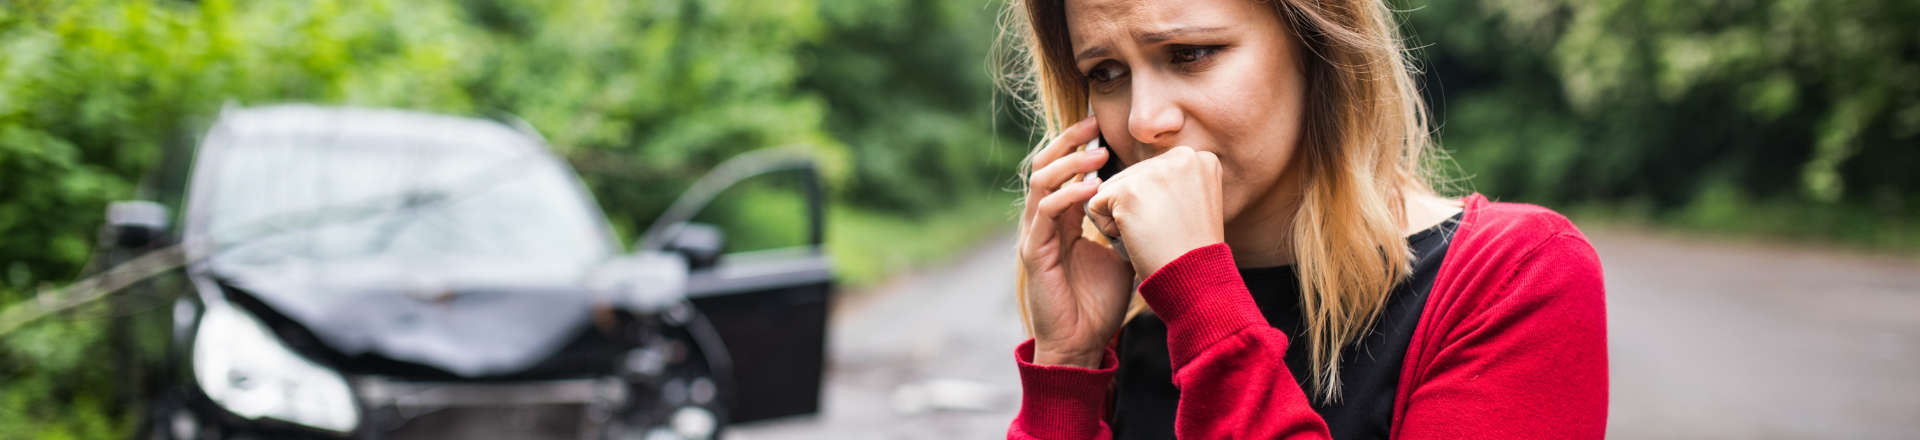 a stressed woman outside a crashed car talking on the phone